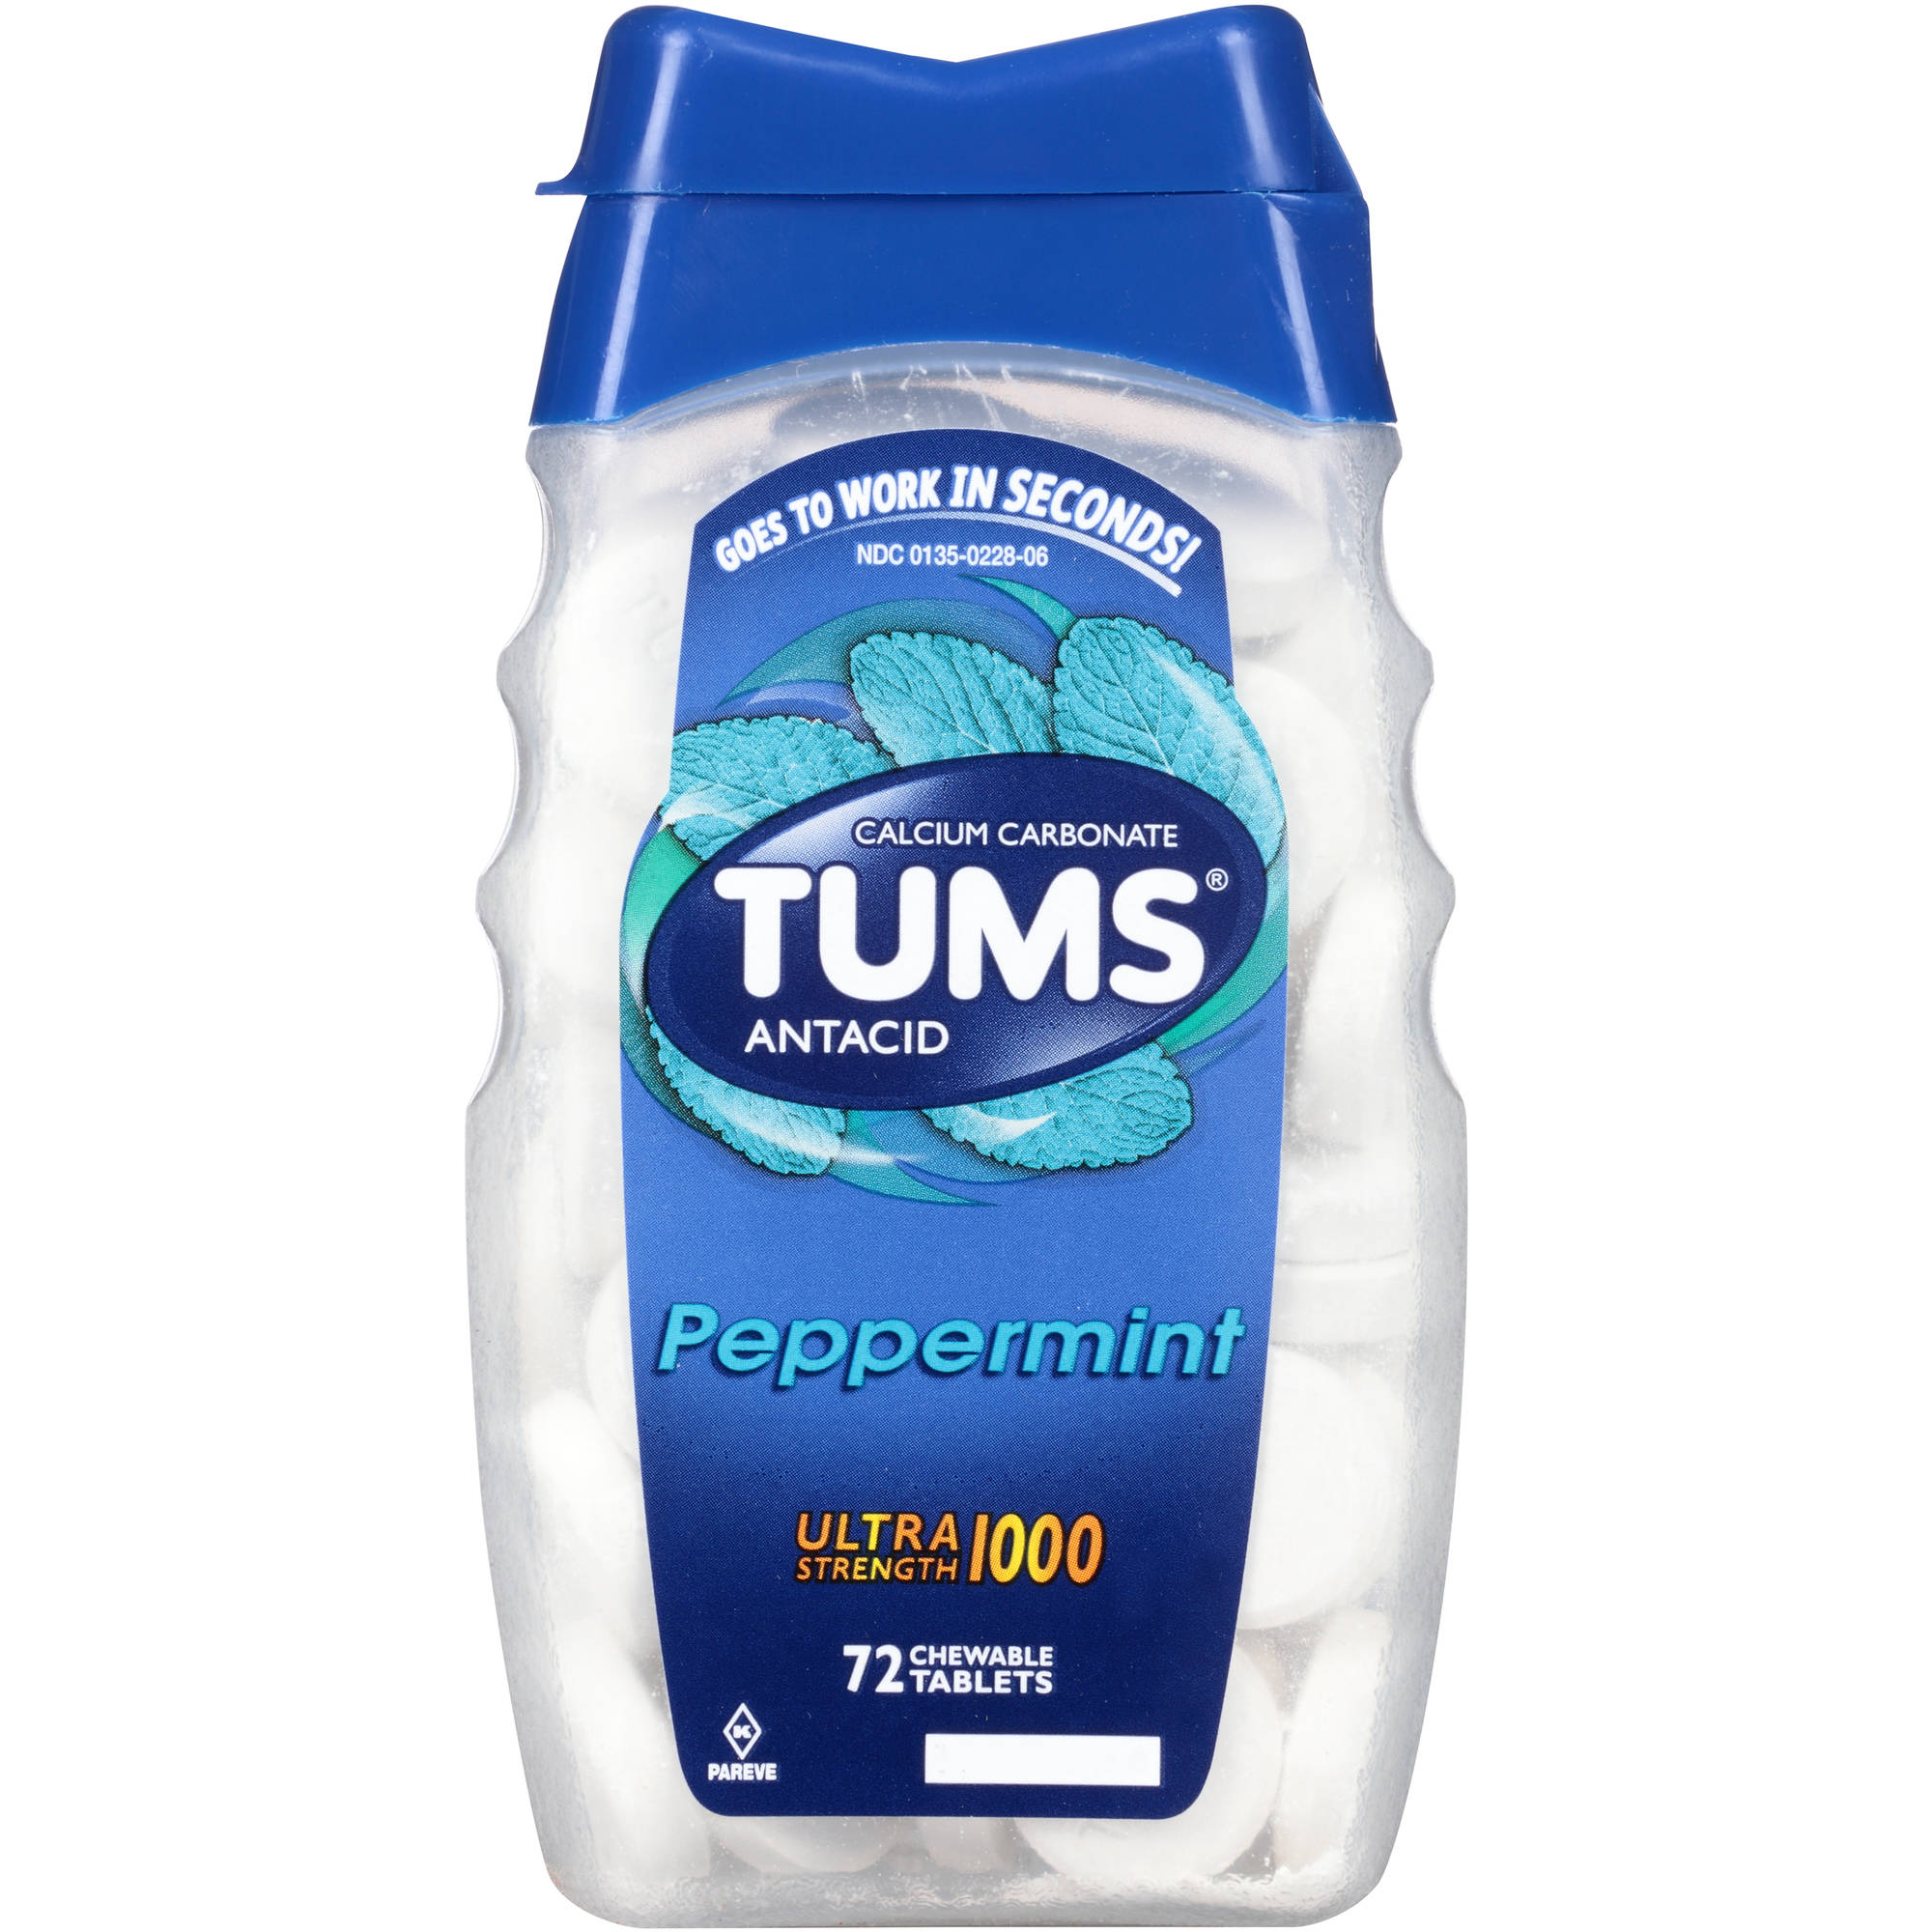 TUMS Antacid Ultra Strength 1000 Peppermint Chewable Tablets, 72 count